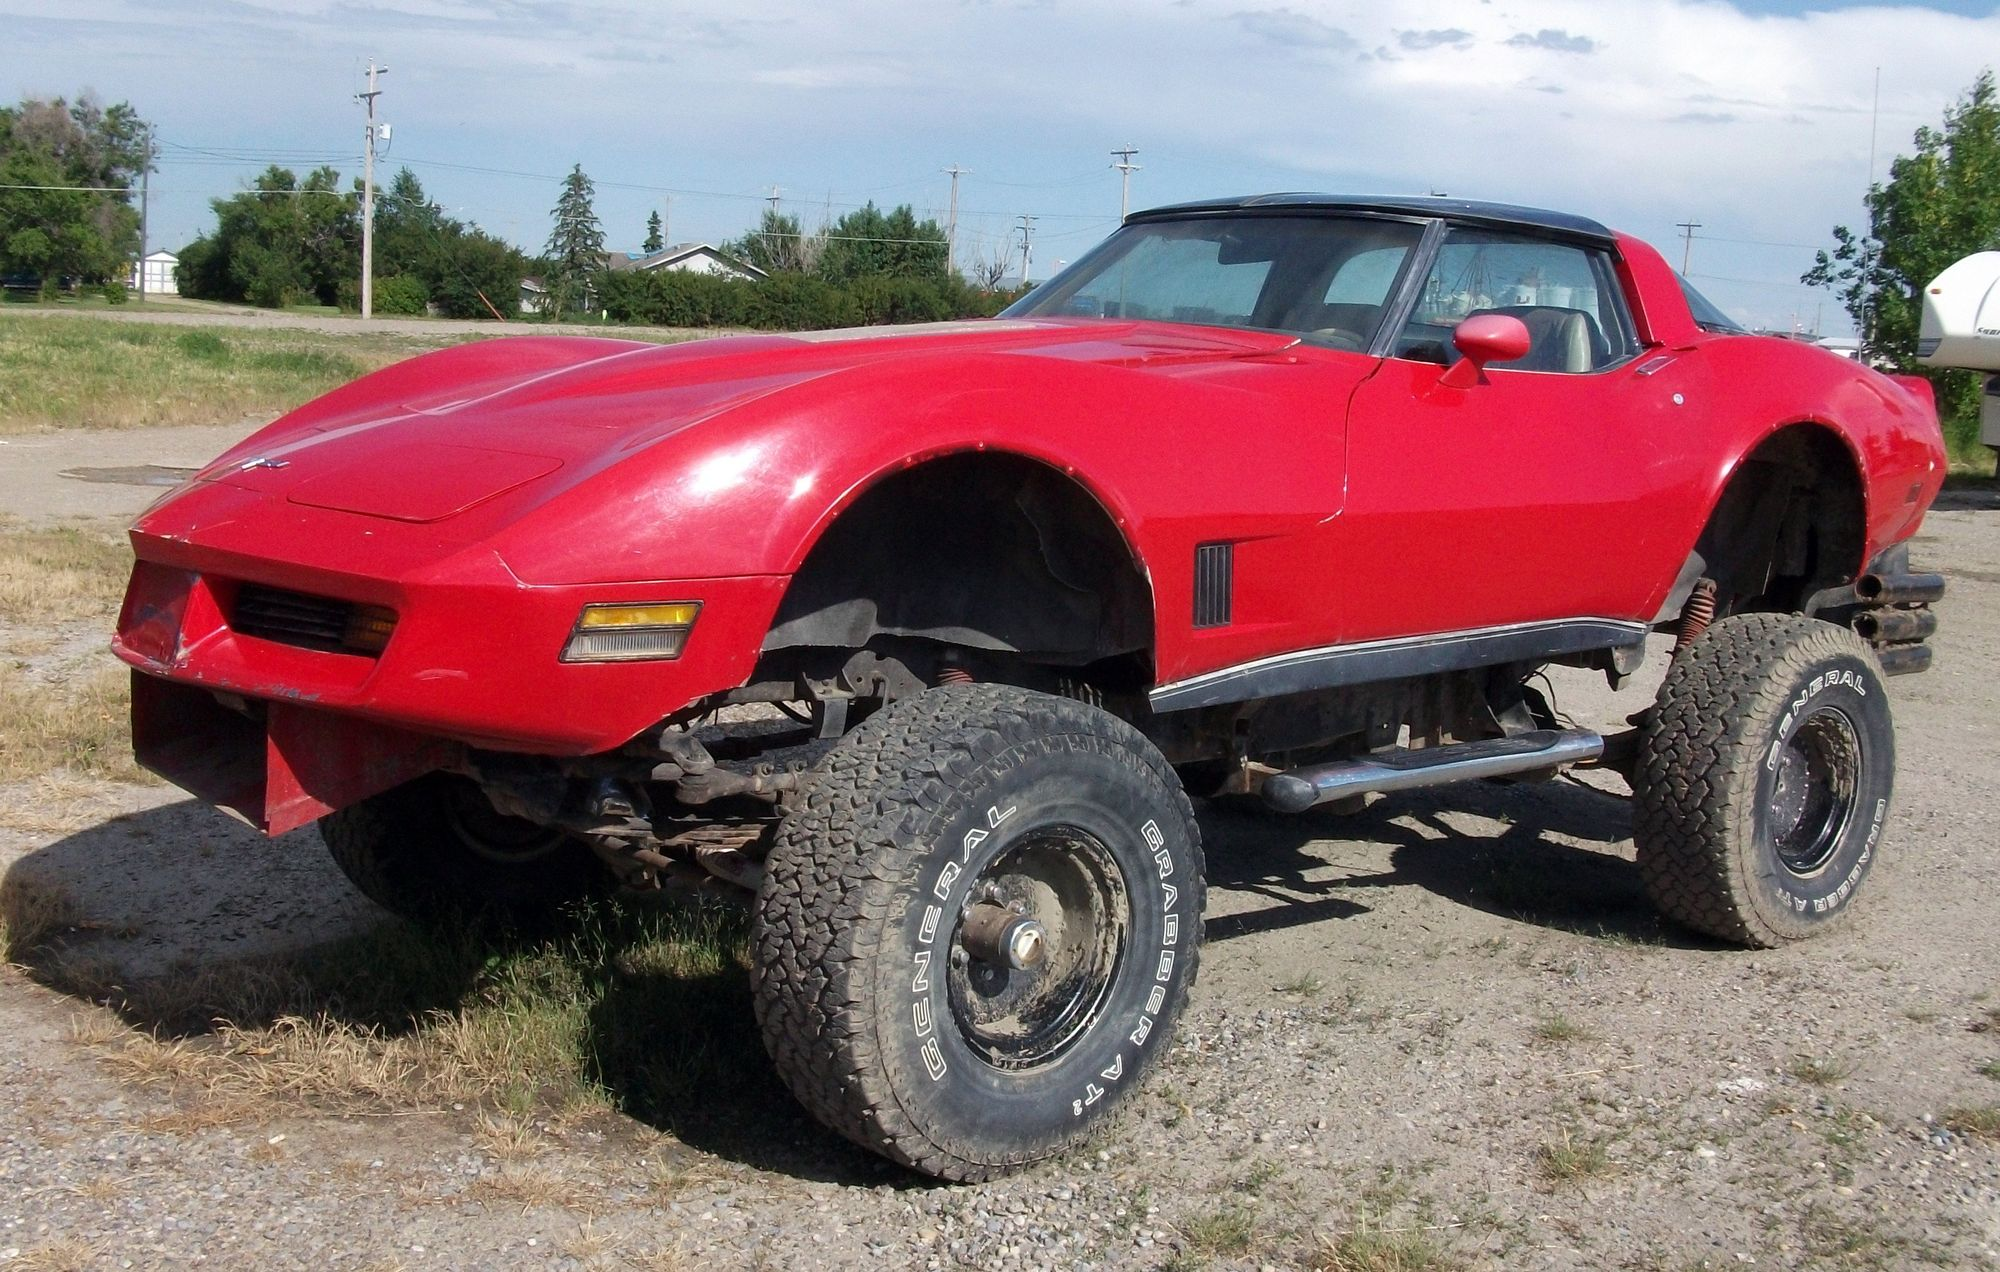 4x4 Archives - Corvette: Sales, News & Lifestyle